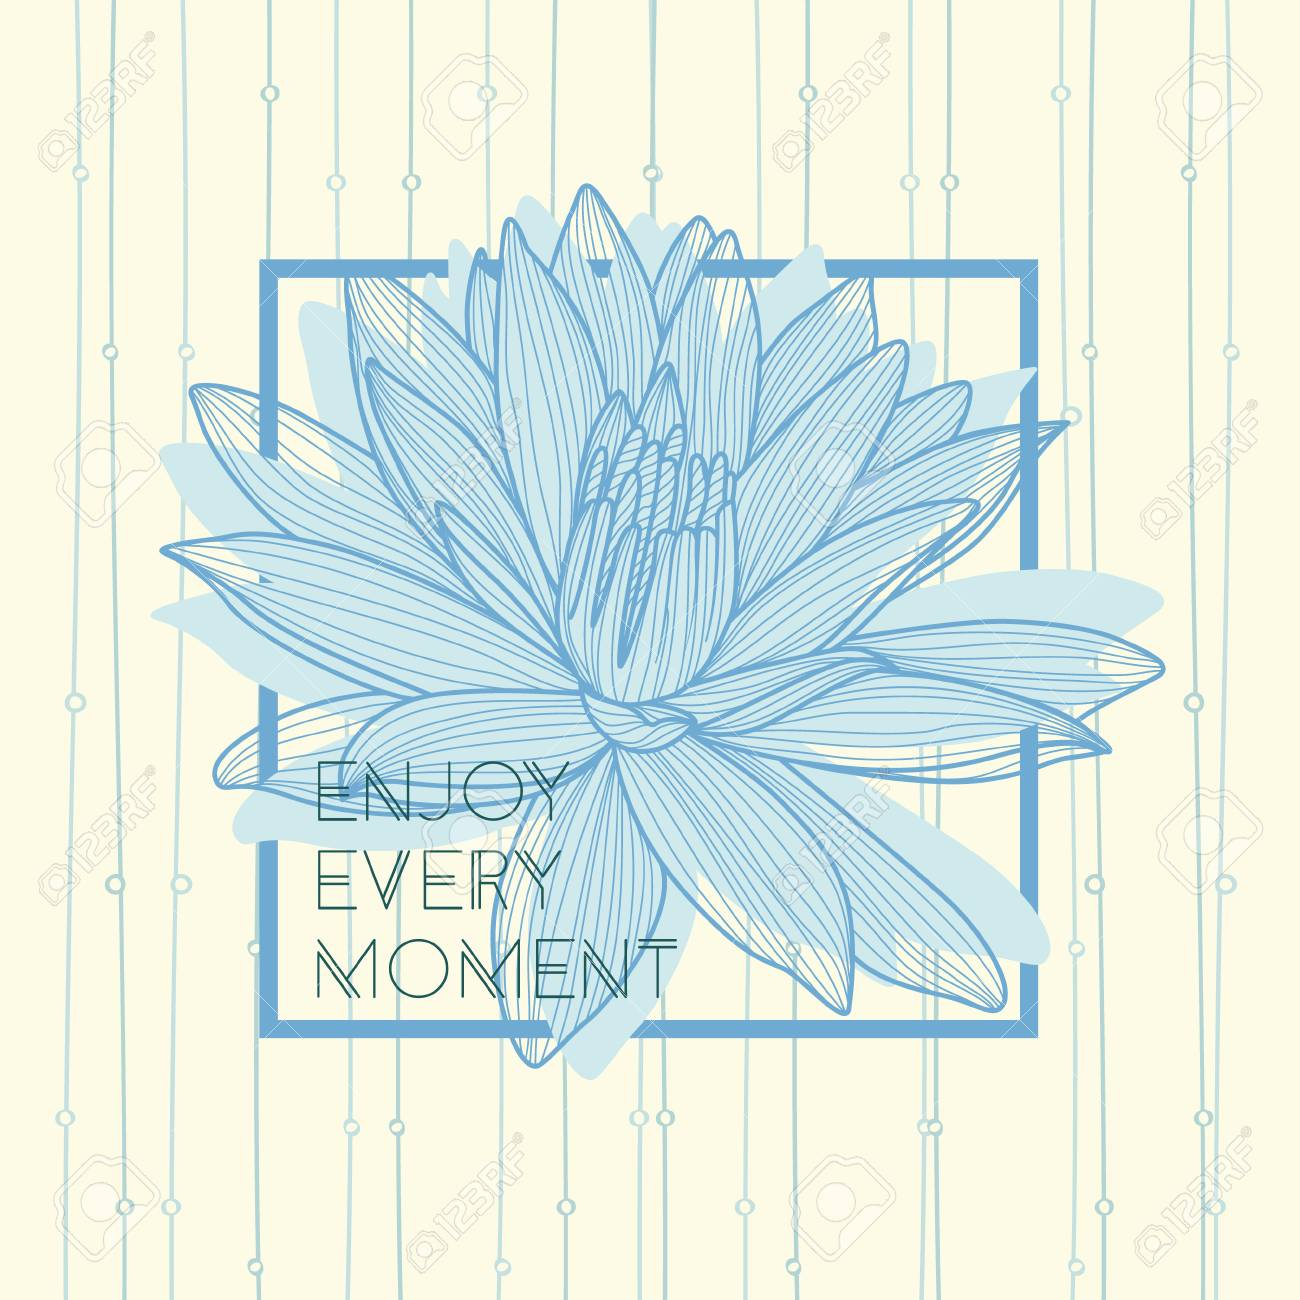 Enjoy Every Moment Quote Hand Drawn Lotus Flower Royalty Free